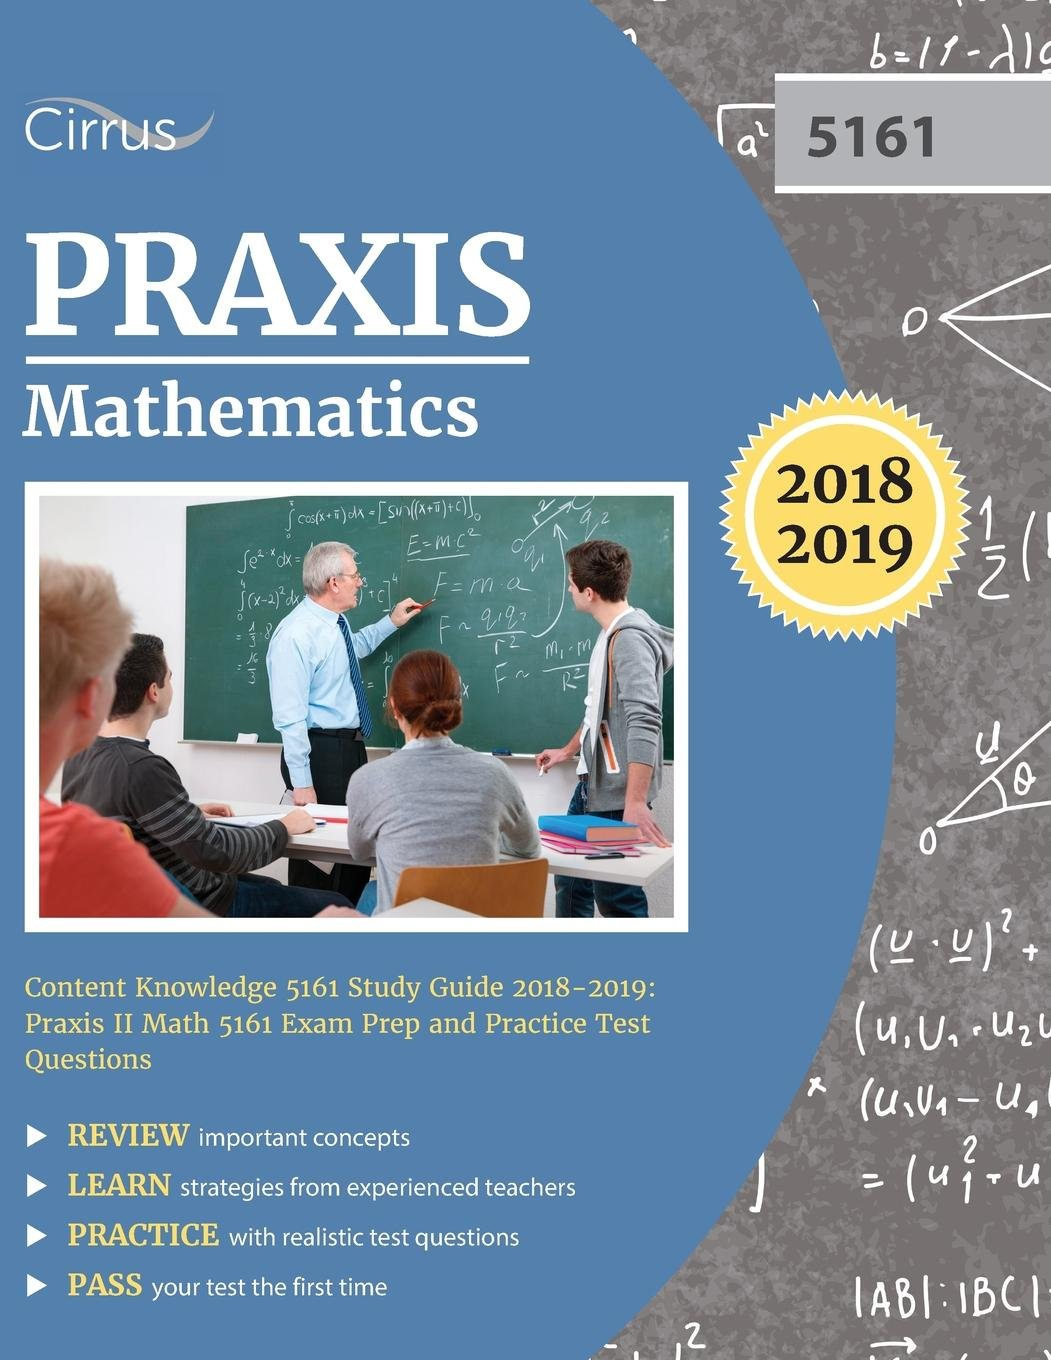 Praxis Mathematics Content Knowledge 5161 Study Guide 2018-2019: Praxis II  Math 5161 Exam Prep and Practice Test Questions: Cirrus Teacher  Certification ...